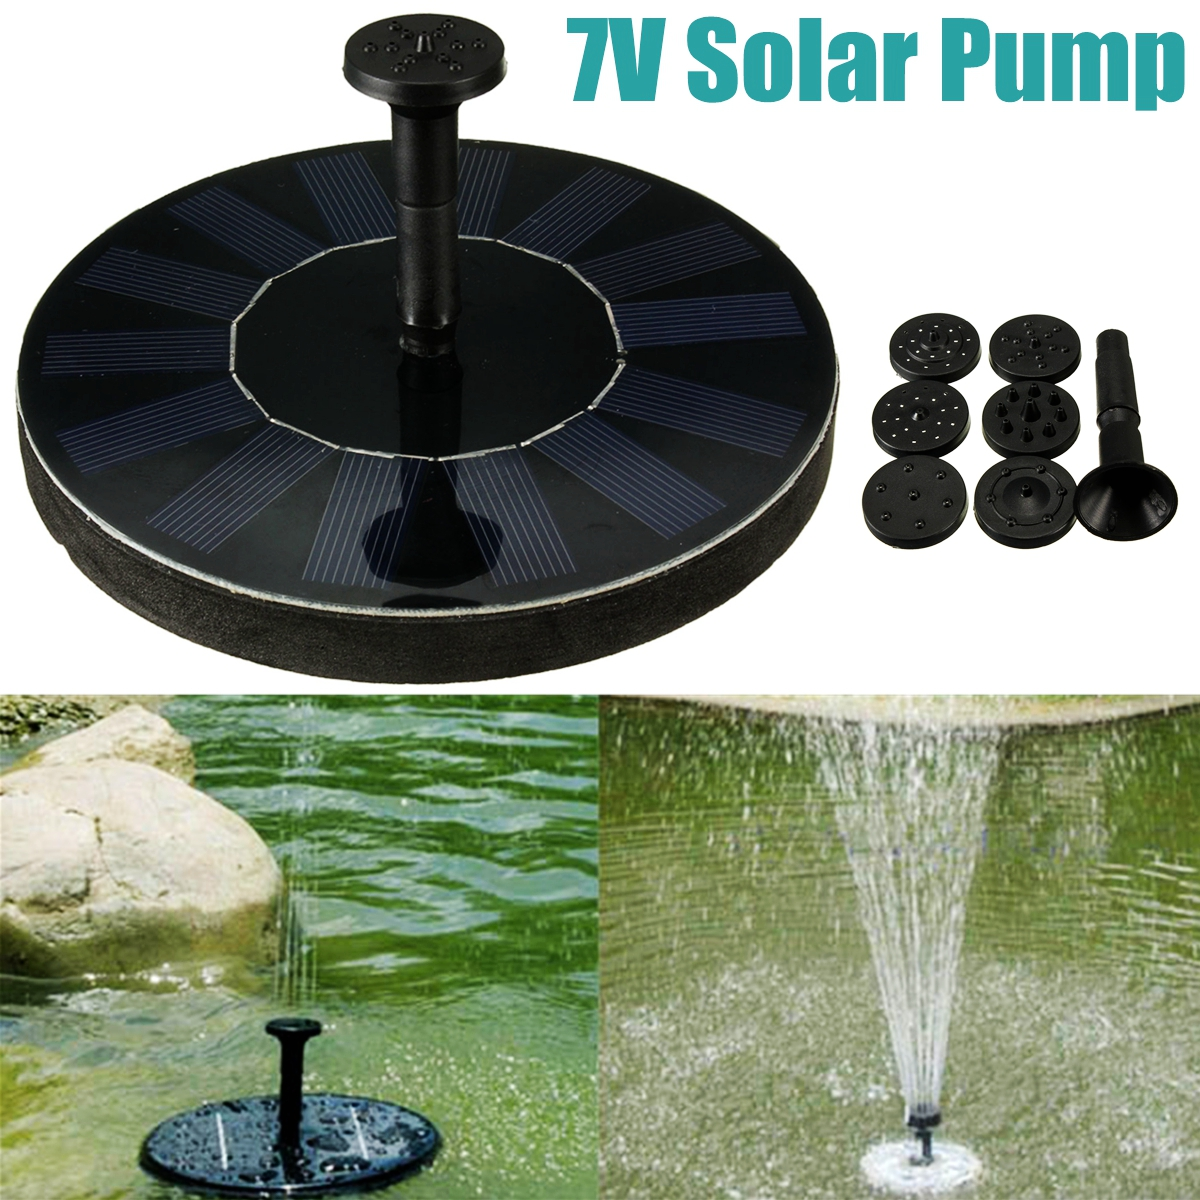 Small Pond Garden Decoration And Patio, Outdoor Water Fountain Pump Replacement